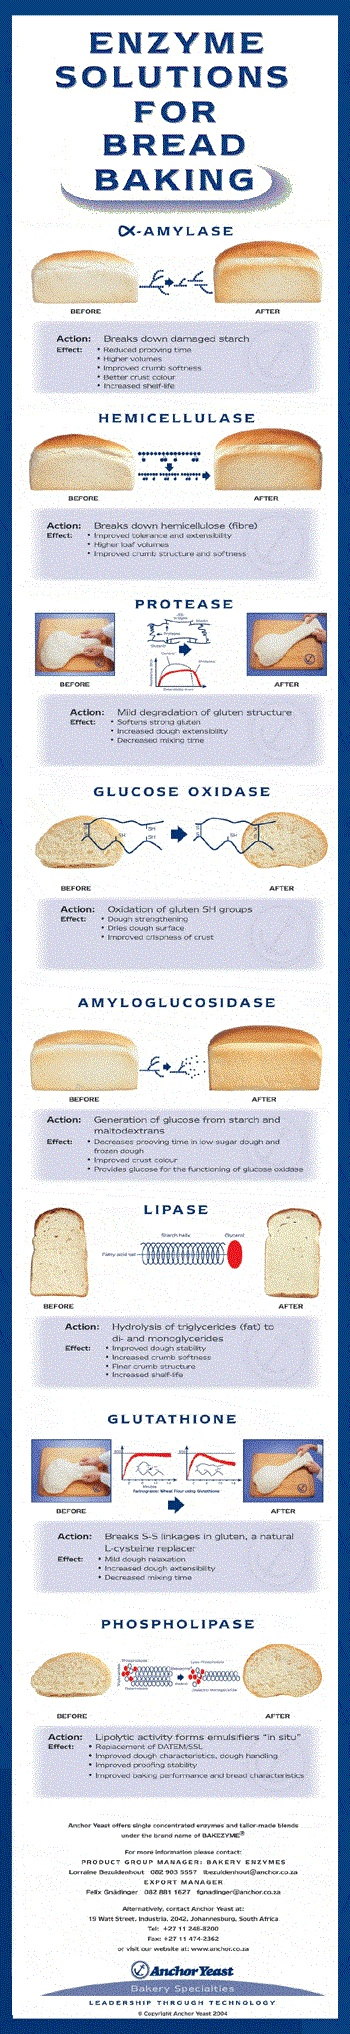 #Bread #enzymes, and what they do.  From an 'Anchor Yeast' poster, which I edited on MS Paint to make an #infographic.